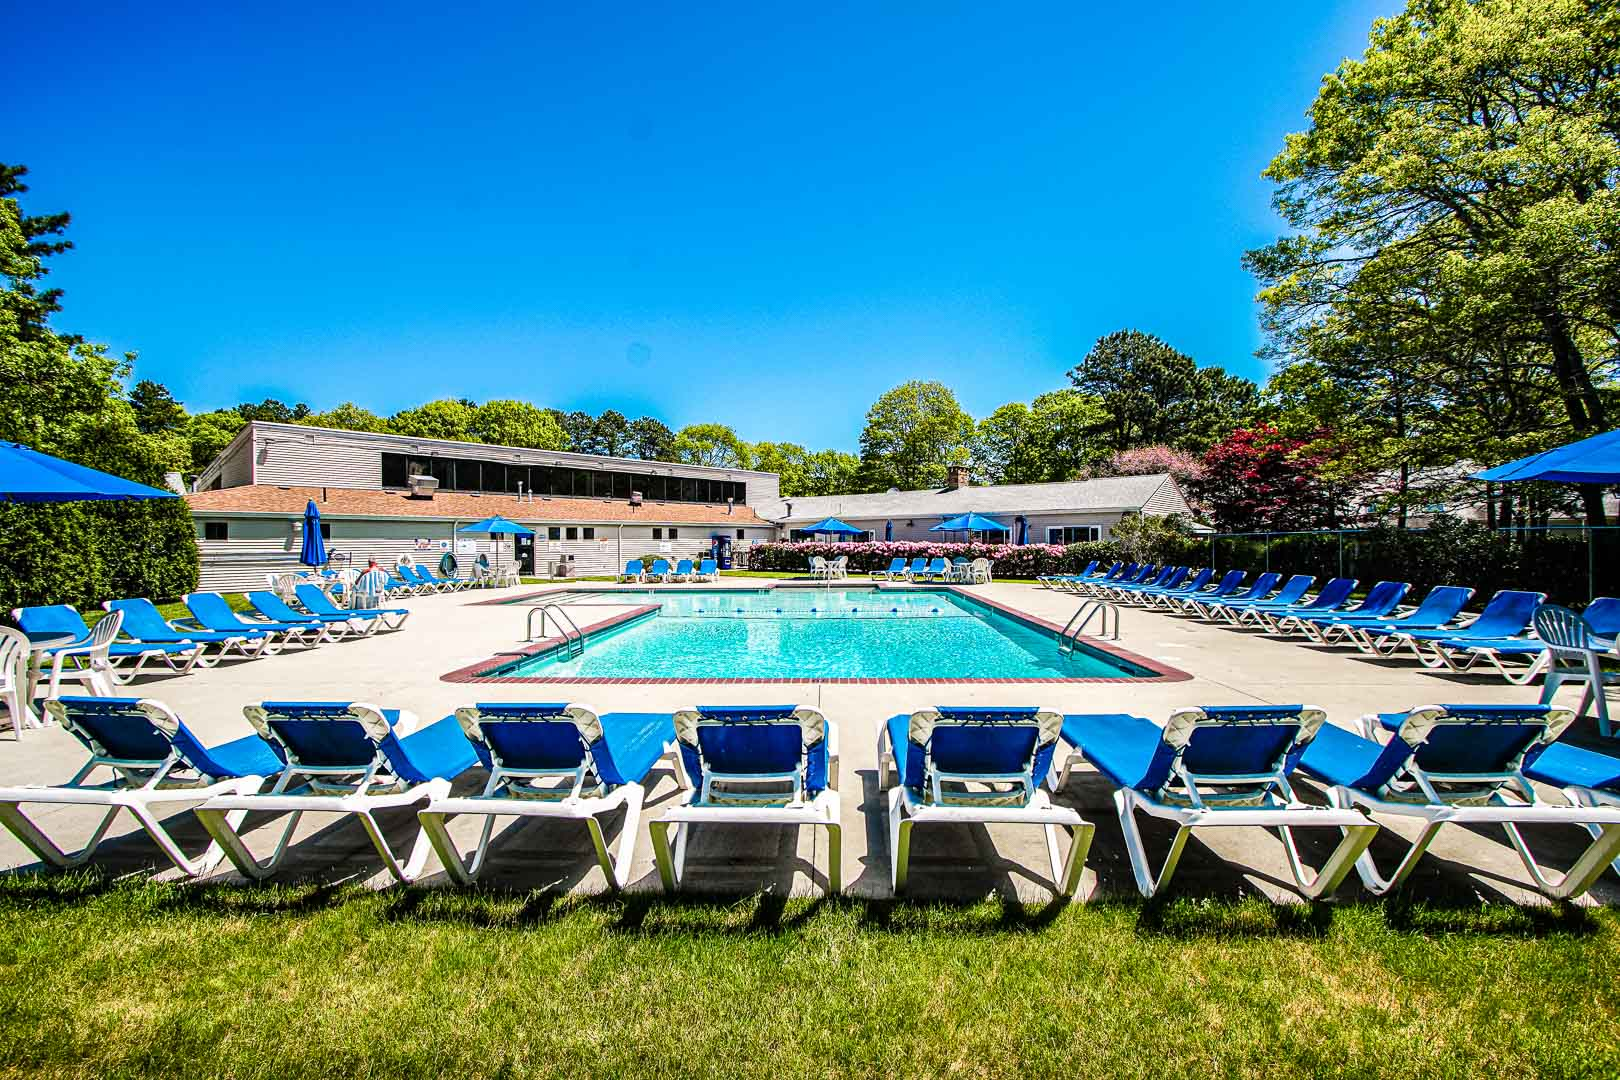 An expansive view of the outdoor swimming pool and lounging chairs at VRI's Sea Mist Resort in Massachusetts.